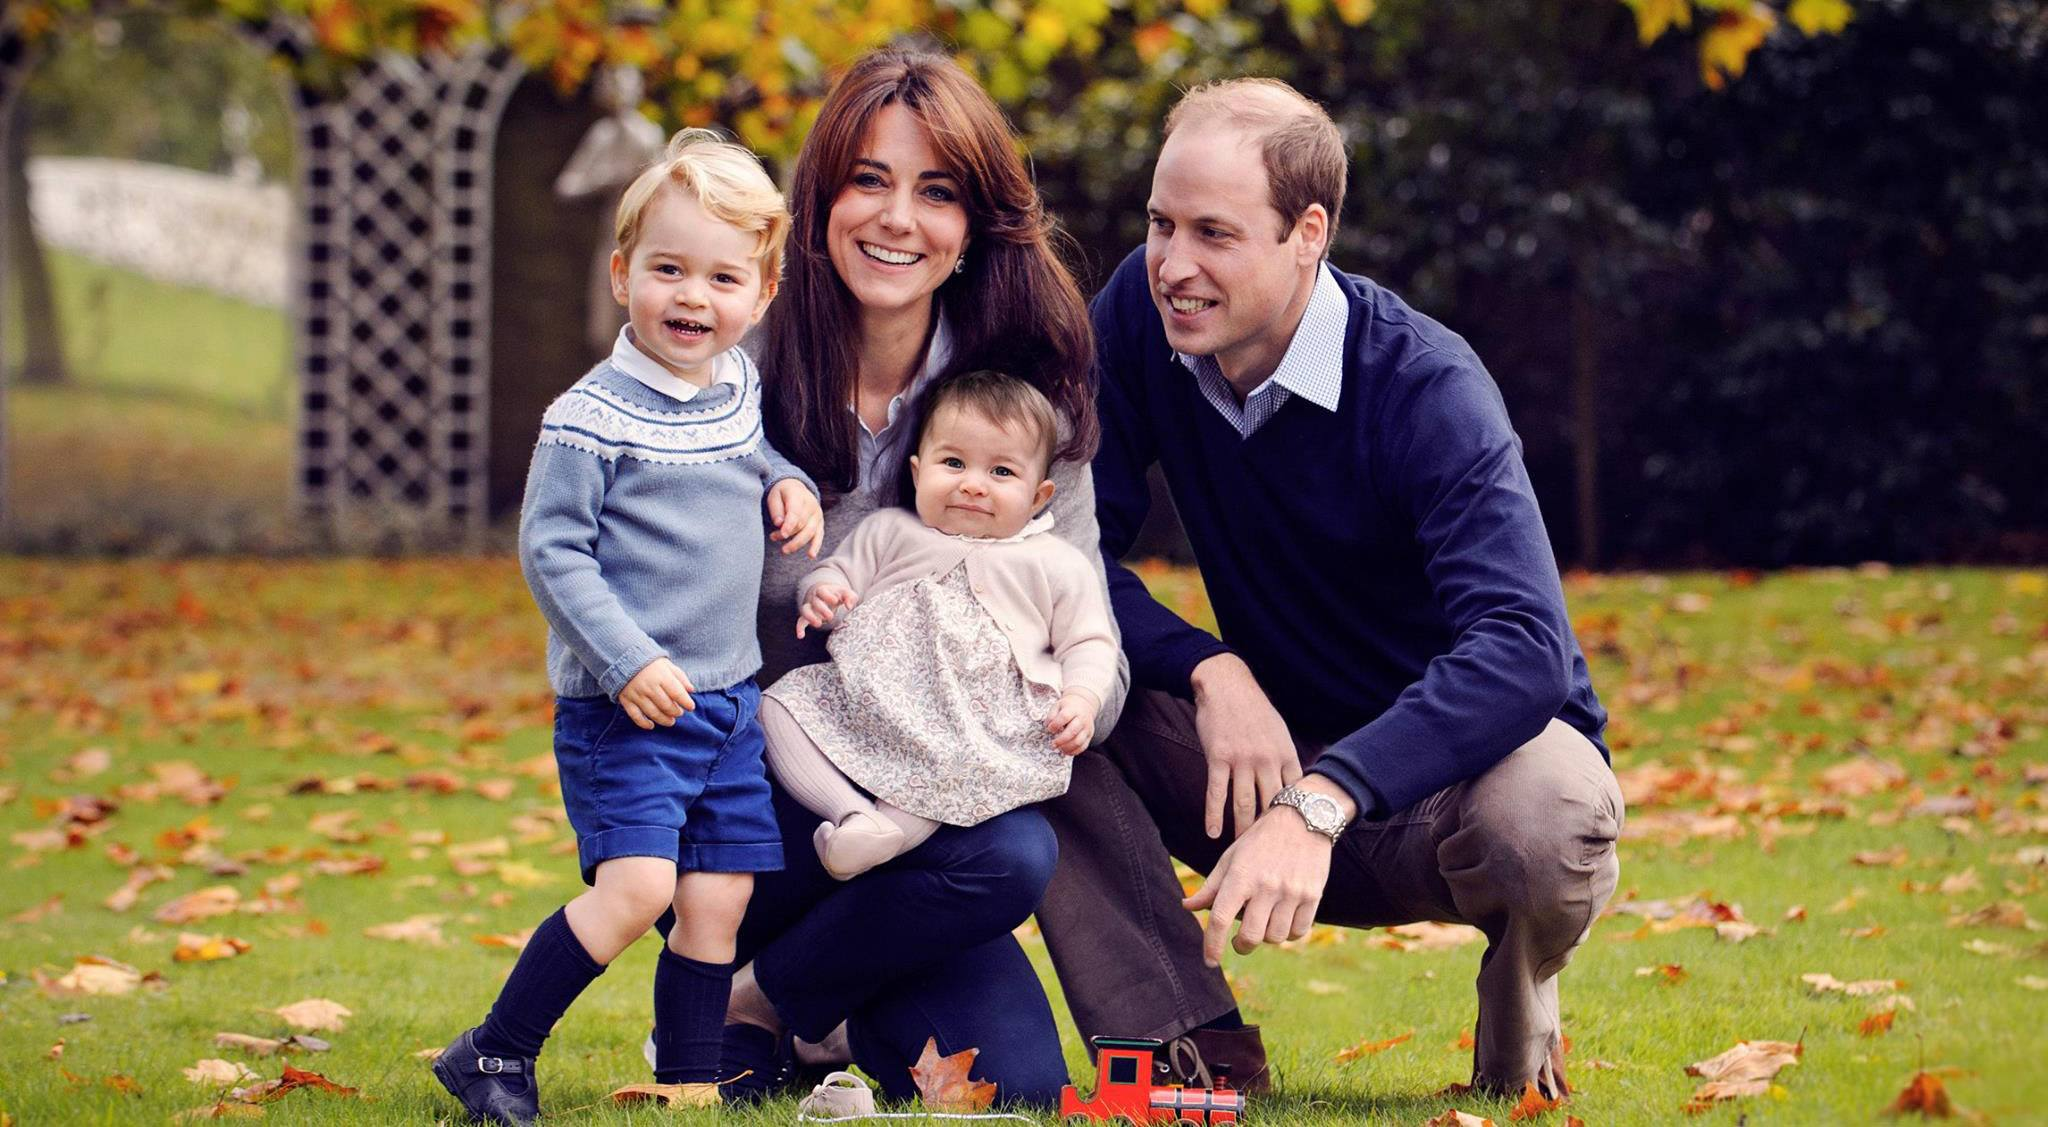 Prince William and Duchess of Cambridge bringing Charlotte and George to Canada, say report